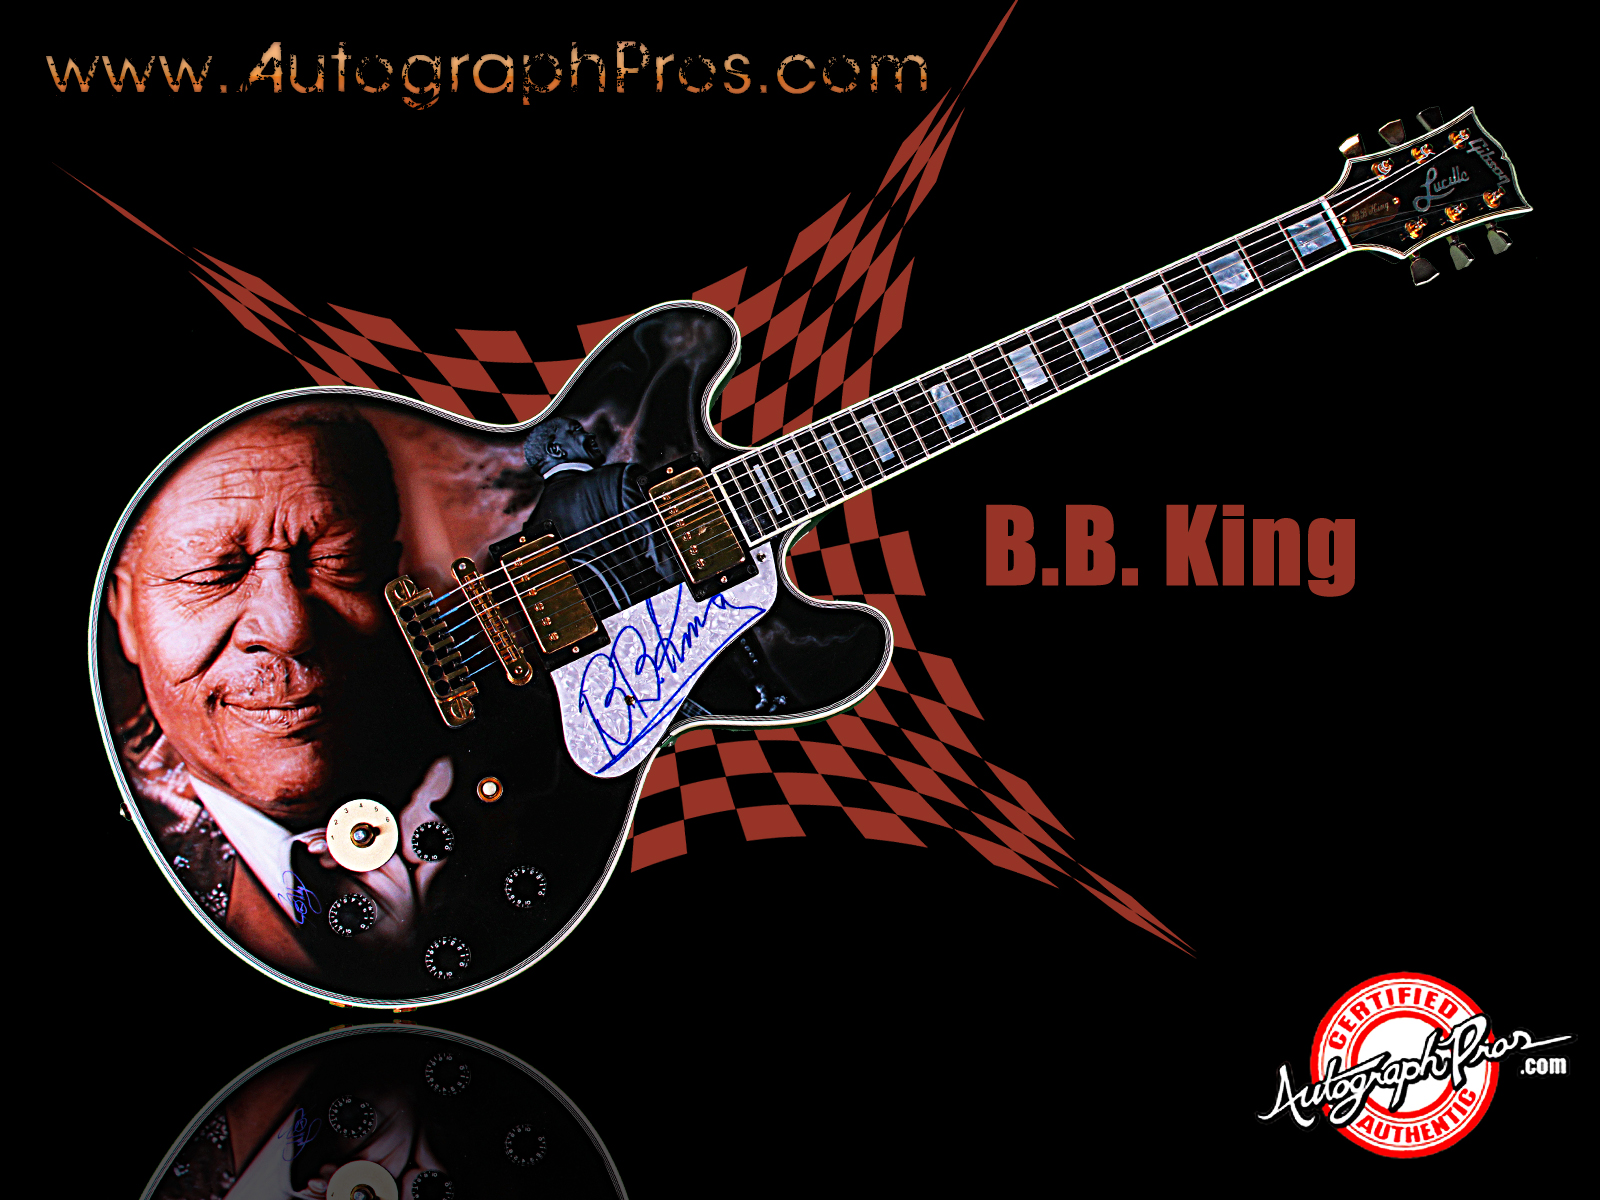 Details about BB King Autographed Signed Gibson Lucille Best 1600x1200